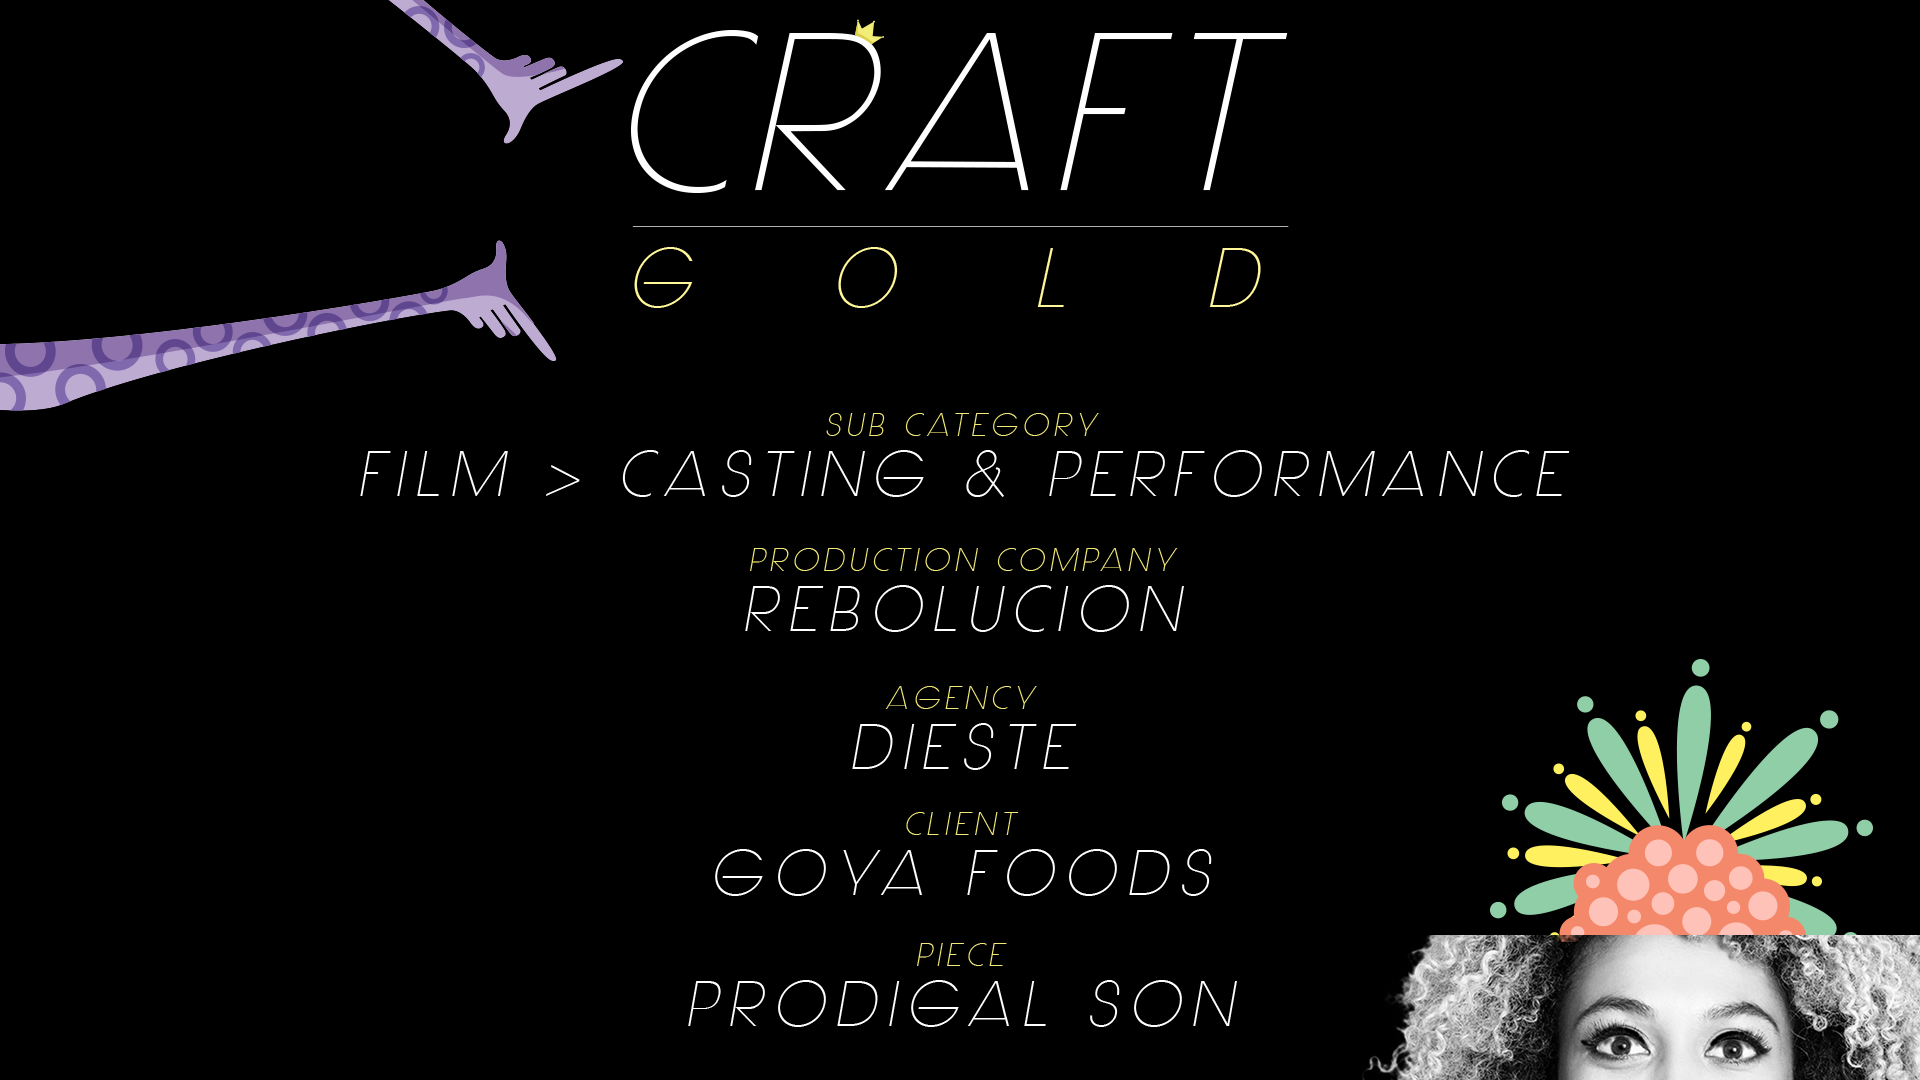 PLACAS GOLD-craft-FILM - CASTING & PERFORMANCE.png